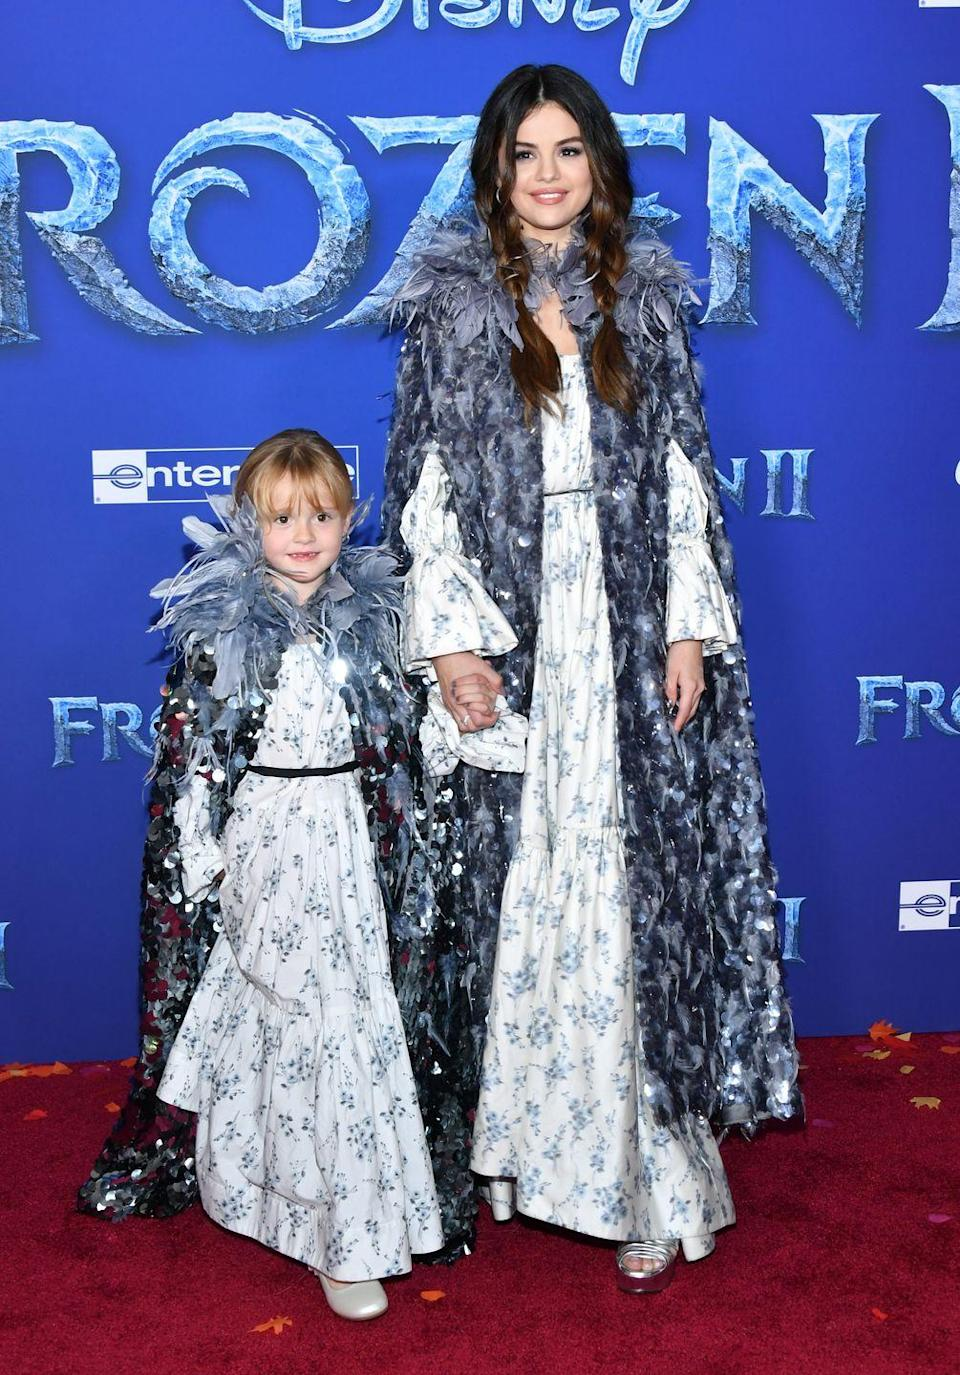 "<p>Matching in Marc Jacobs with her younger sister, Gracie Teefey, for the <a href=""https://www.elle.com/culture/celebrities/a29736487/selena-gomez-sister-matching-outfits-frozen-premiere/"" rel=""nofollow noopener"" target=""_blank"" data-ylk=""slk:premiere of Frozen 2."" class=""link rapid-noclick-resp"">premiere of <em>Frozen 2</em>.</a></p>"